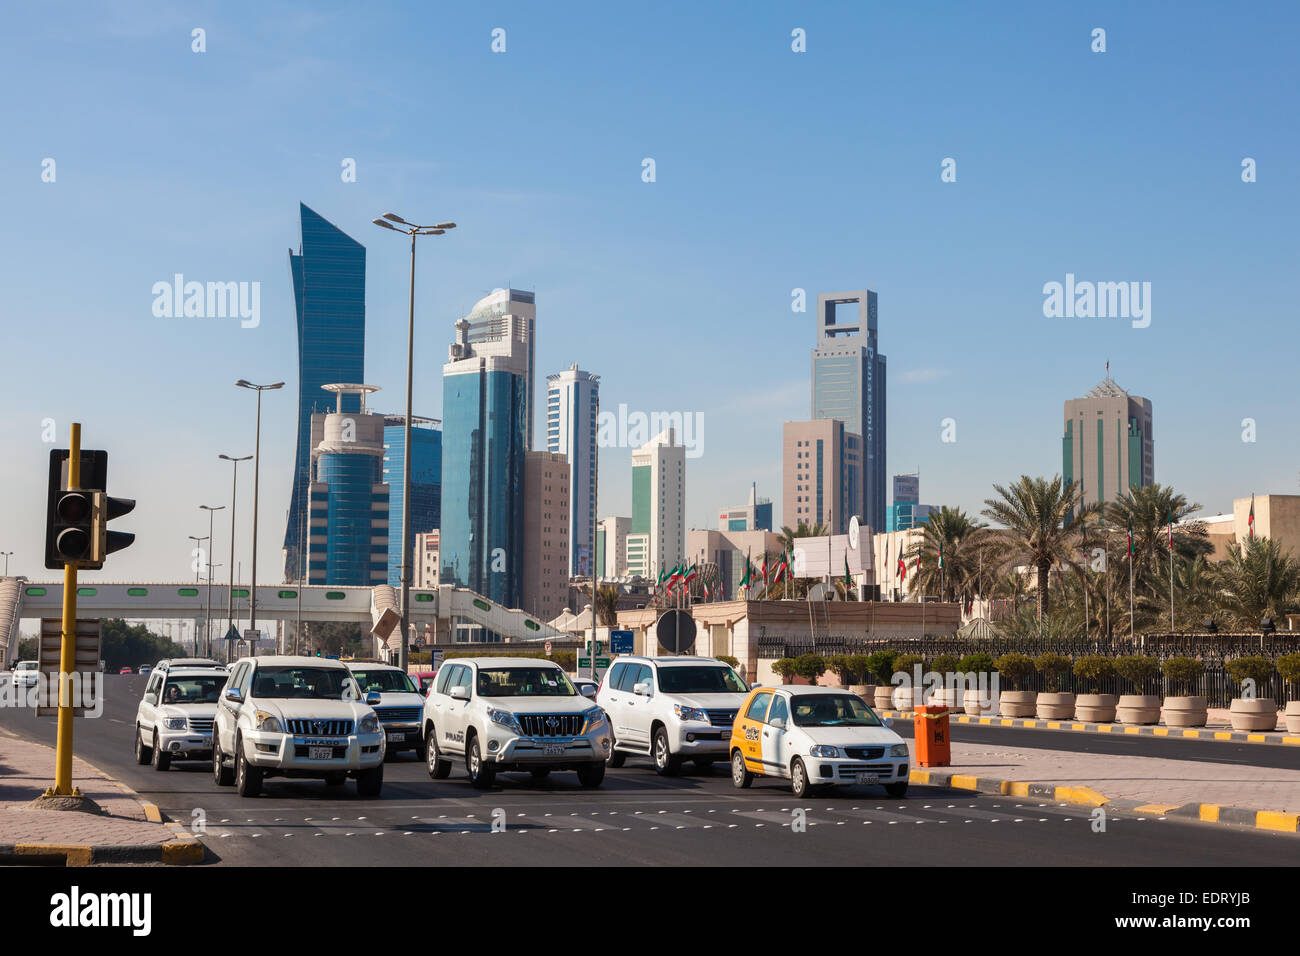 Kuwait City Street Stock Photos & Kuwait City Street Stock Images